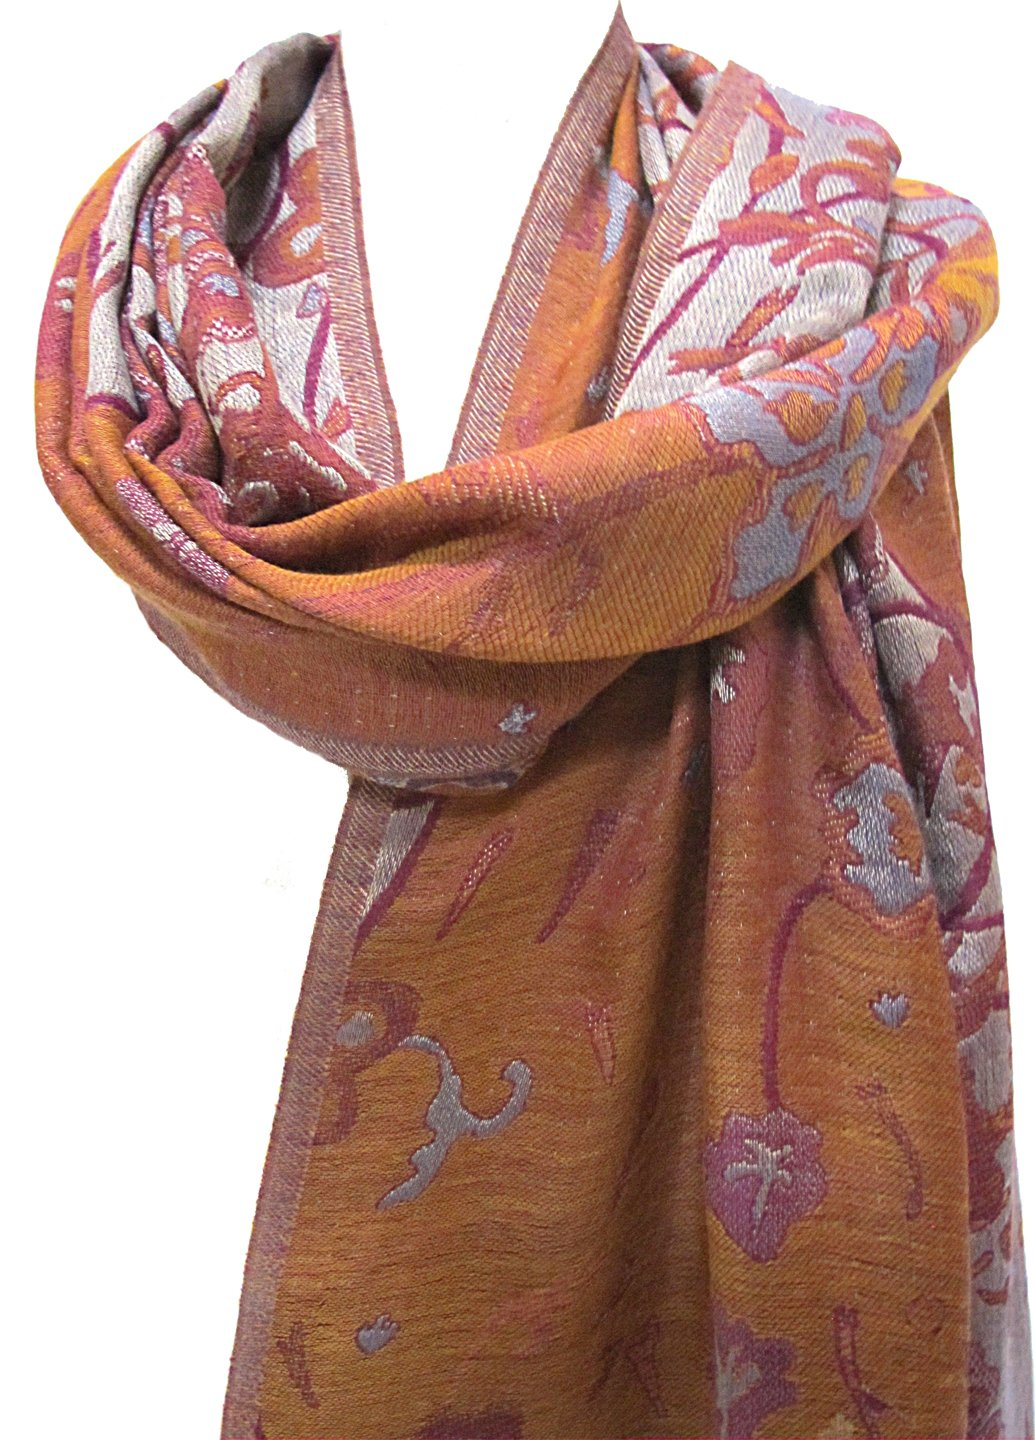 ''Misty Floral'' Silk Merino Wool Shawl Stole Scarf Wrap Purple Copper by Ashiana (Image #1)